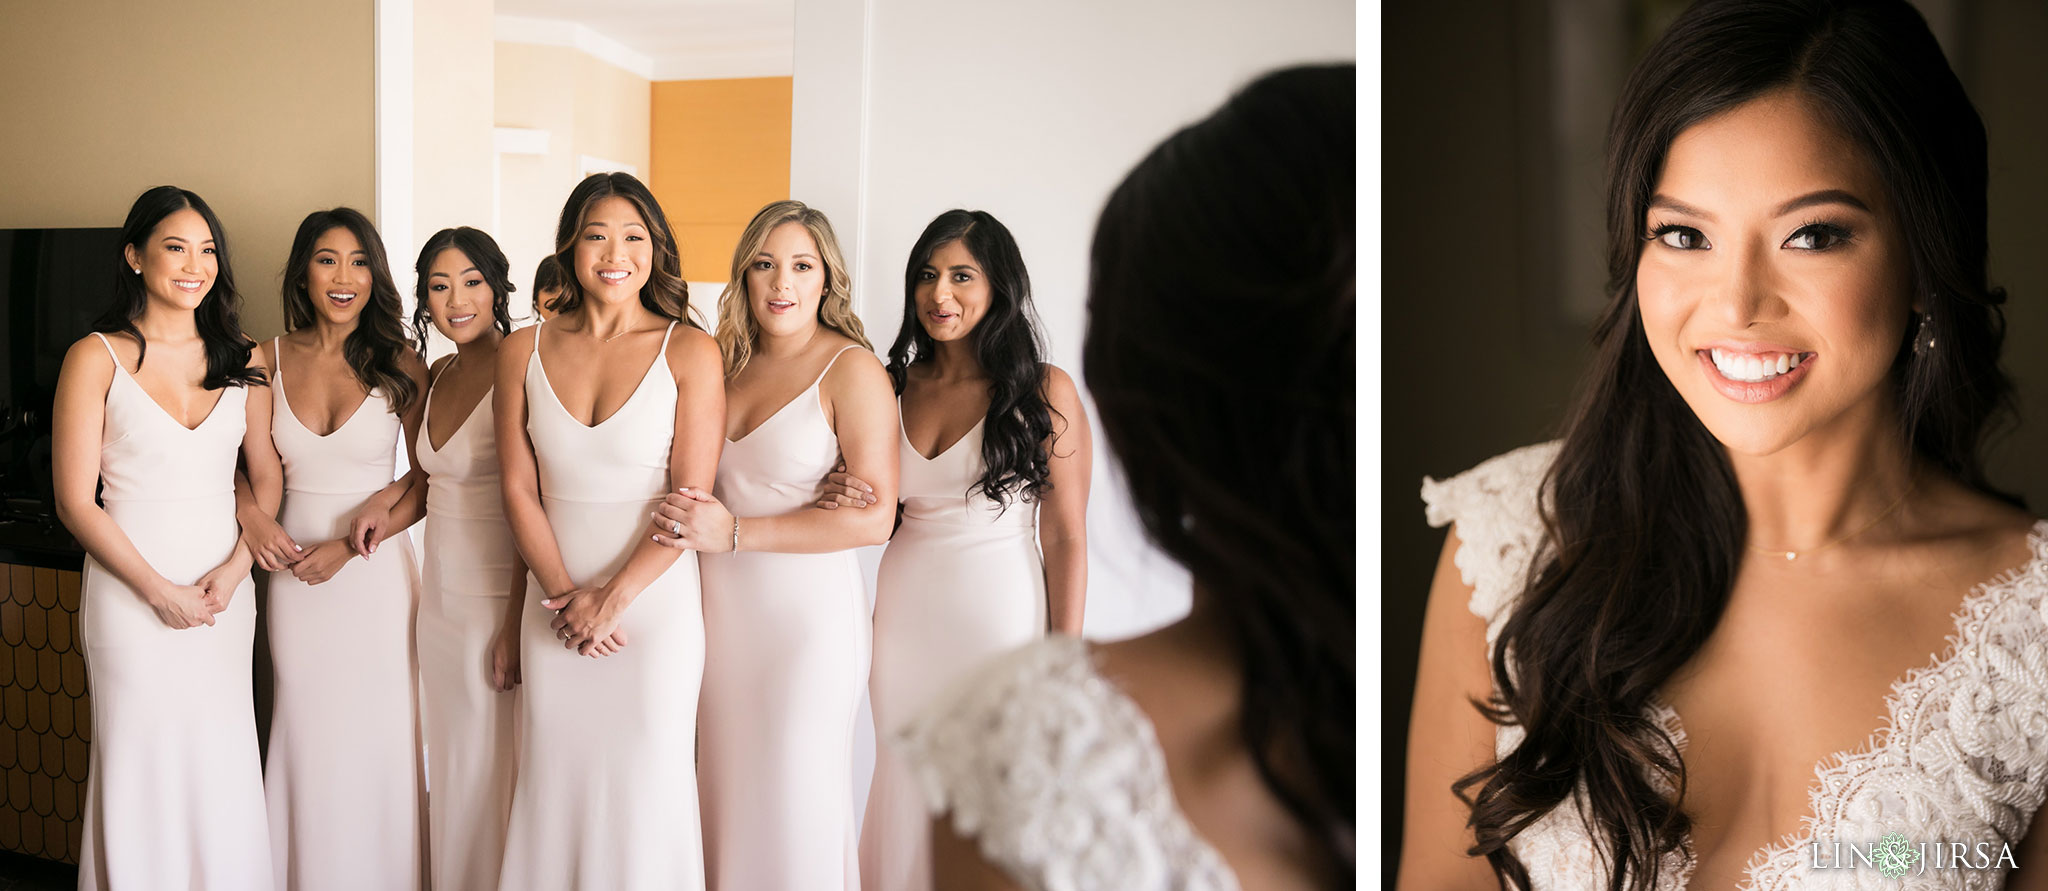 05 greystone mansion los angeles bride wedding photography